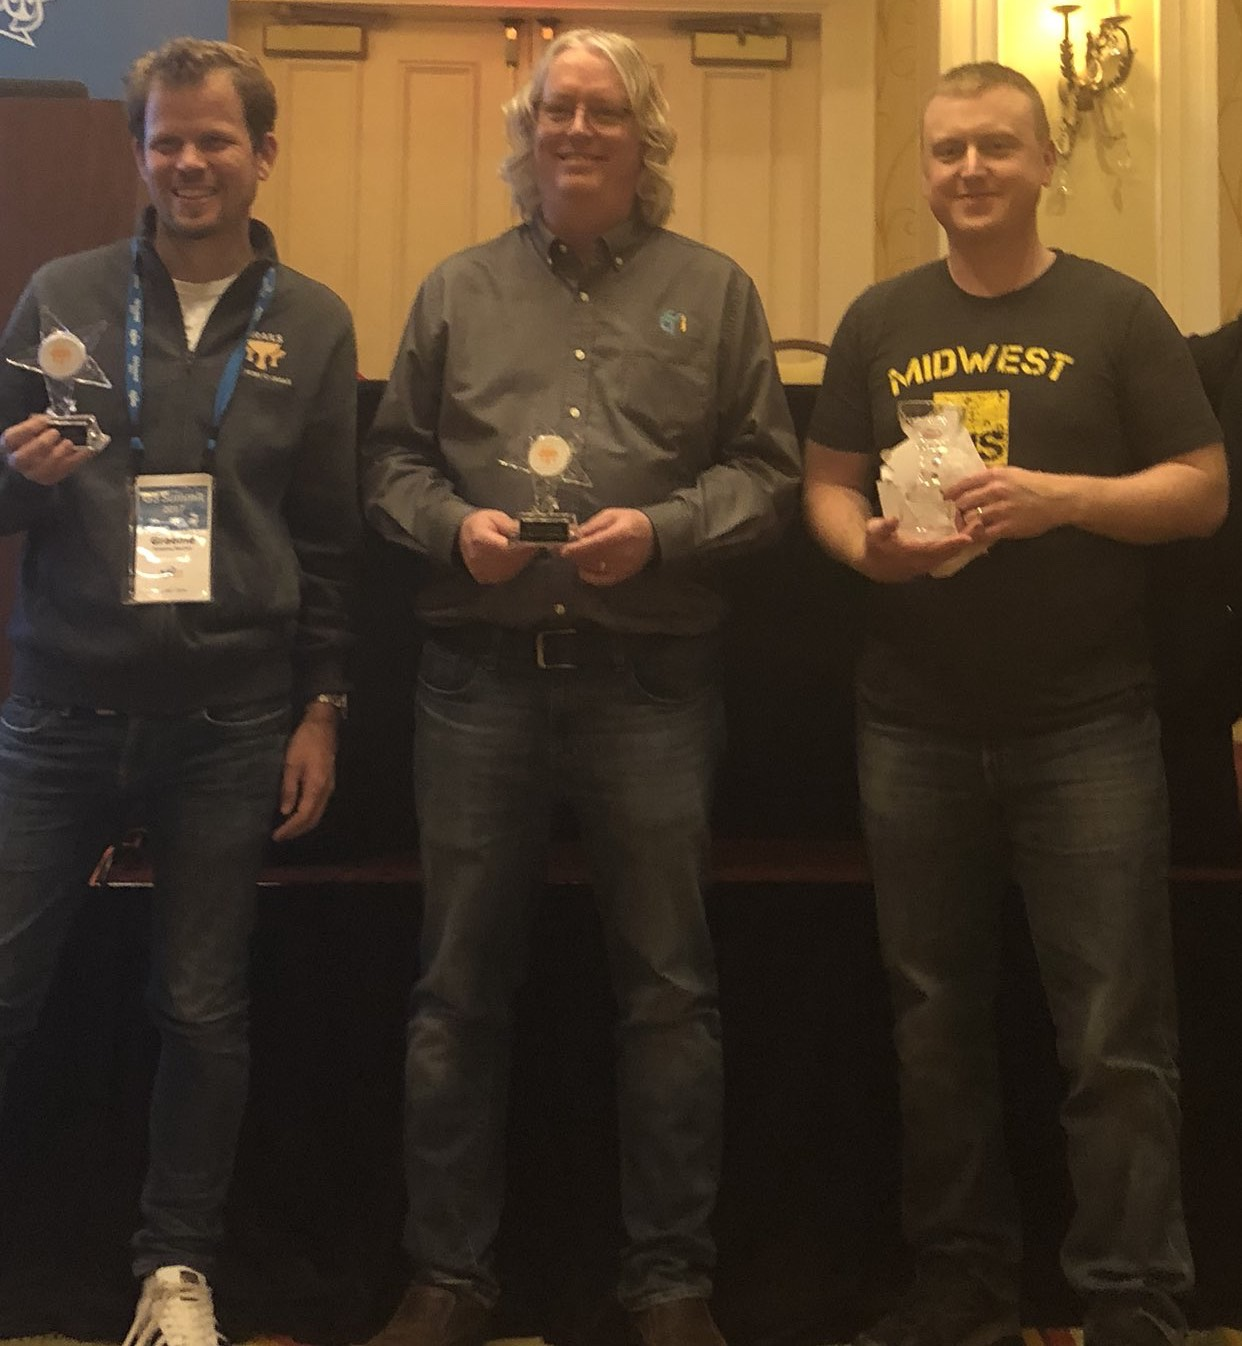 Eric Helgeson, Graeme Rocher and Jeff Scott Brown with Grails Rock Star Award and Grails lifetime awards